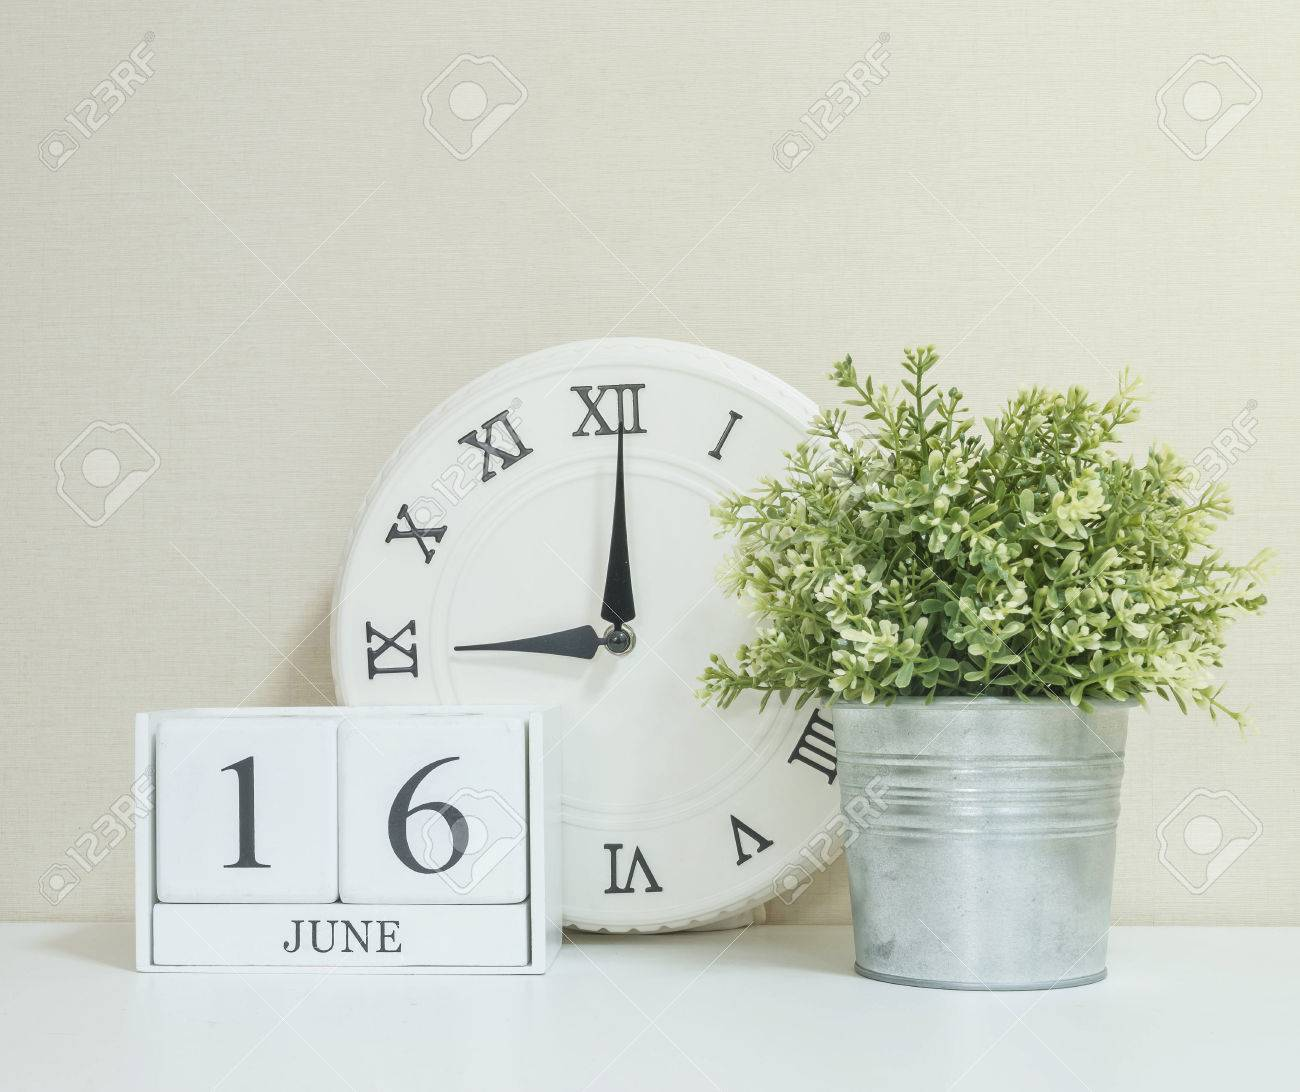 Calendar Clock Wallpaper : White wooden calendar with black 16 june word with clock and.. stock